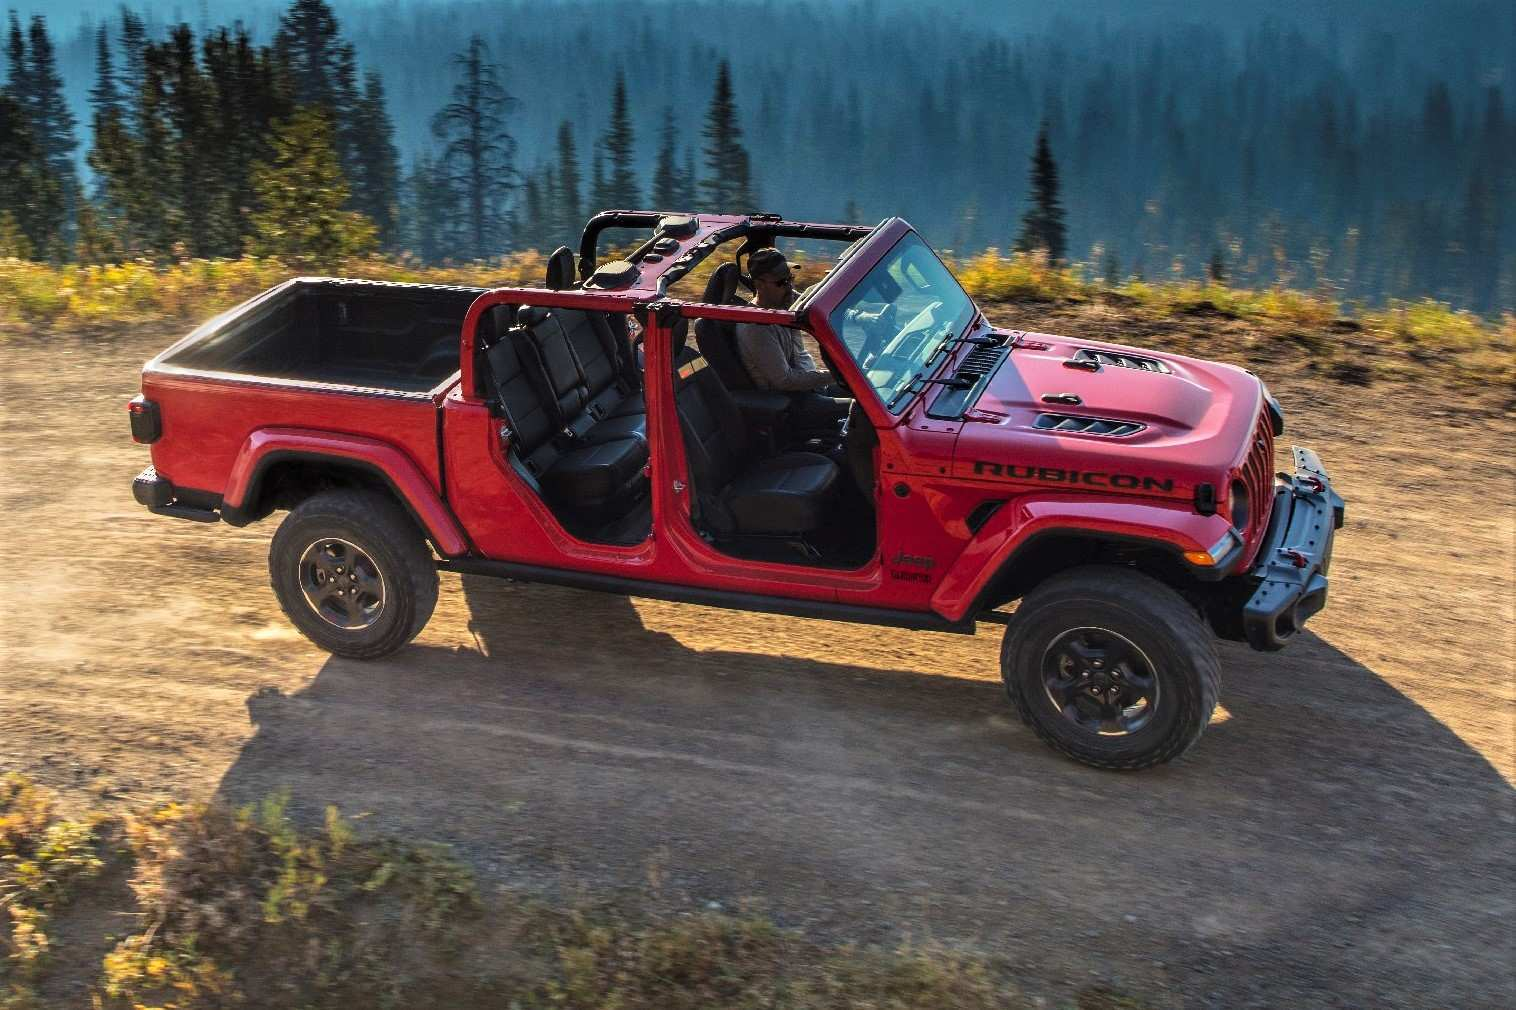 42 Best 2020 Jeep Gladiator Interior Specs